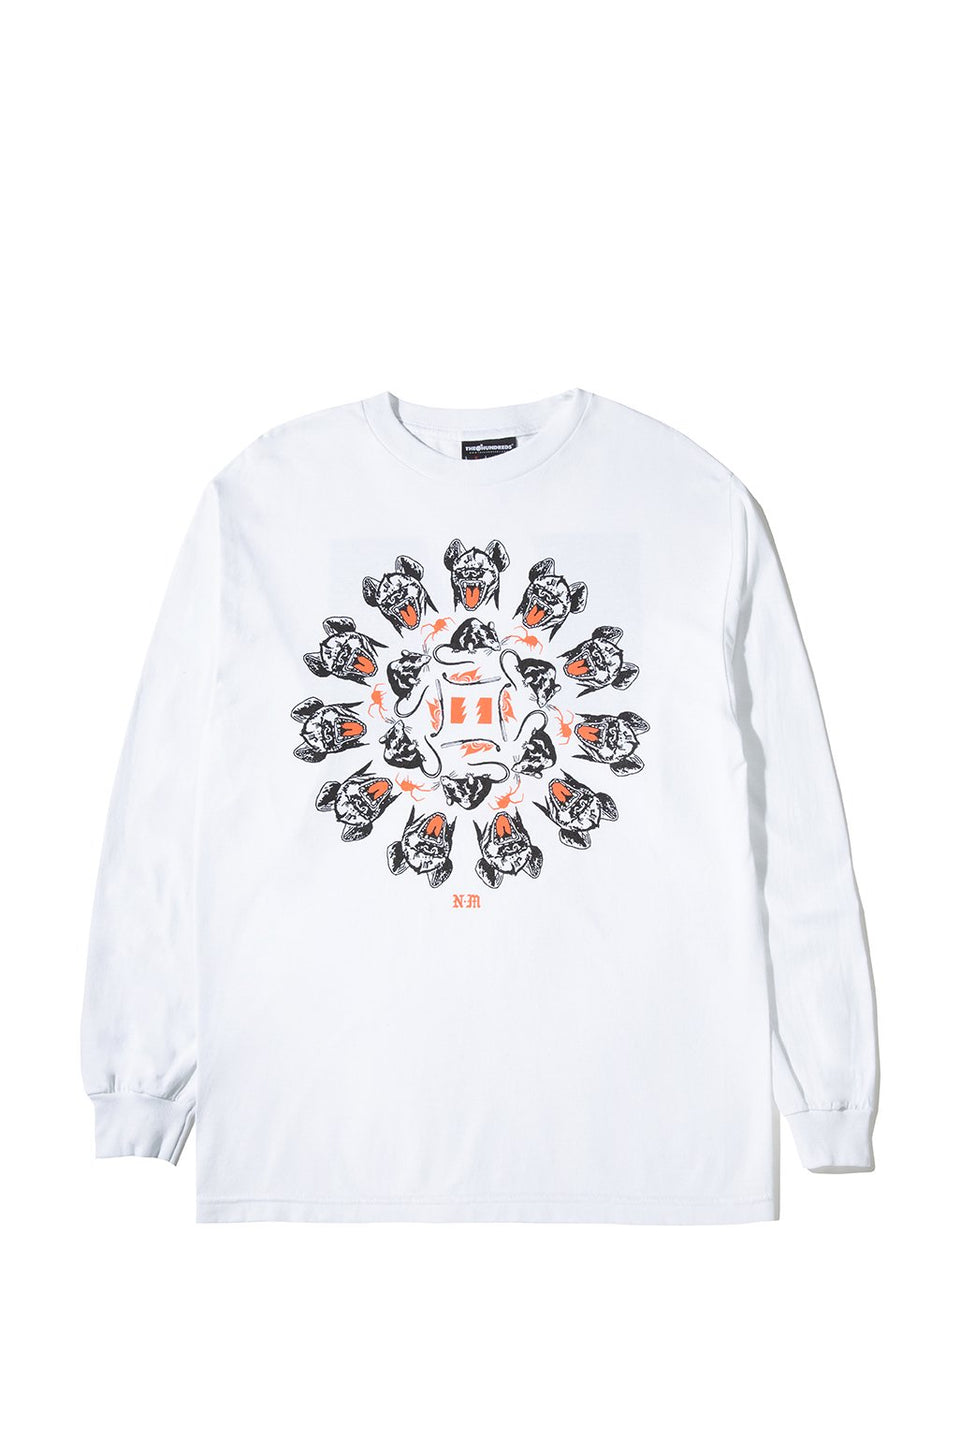 Heads L/S Shirt by The Hundreds